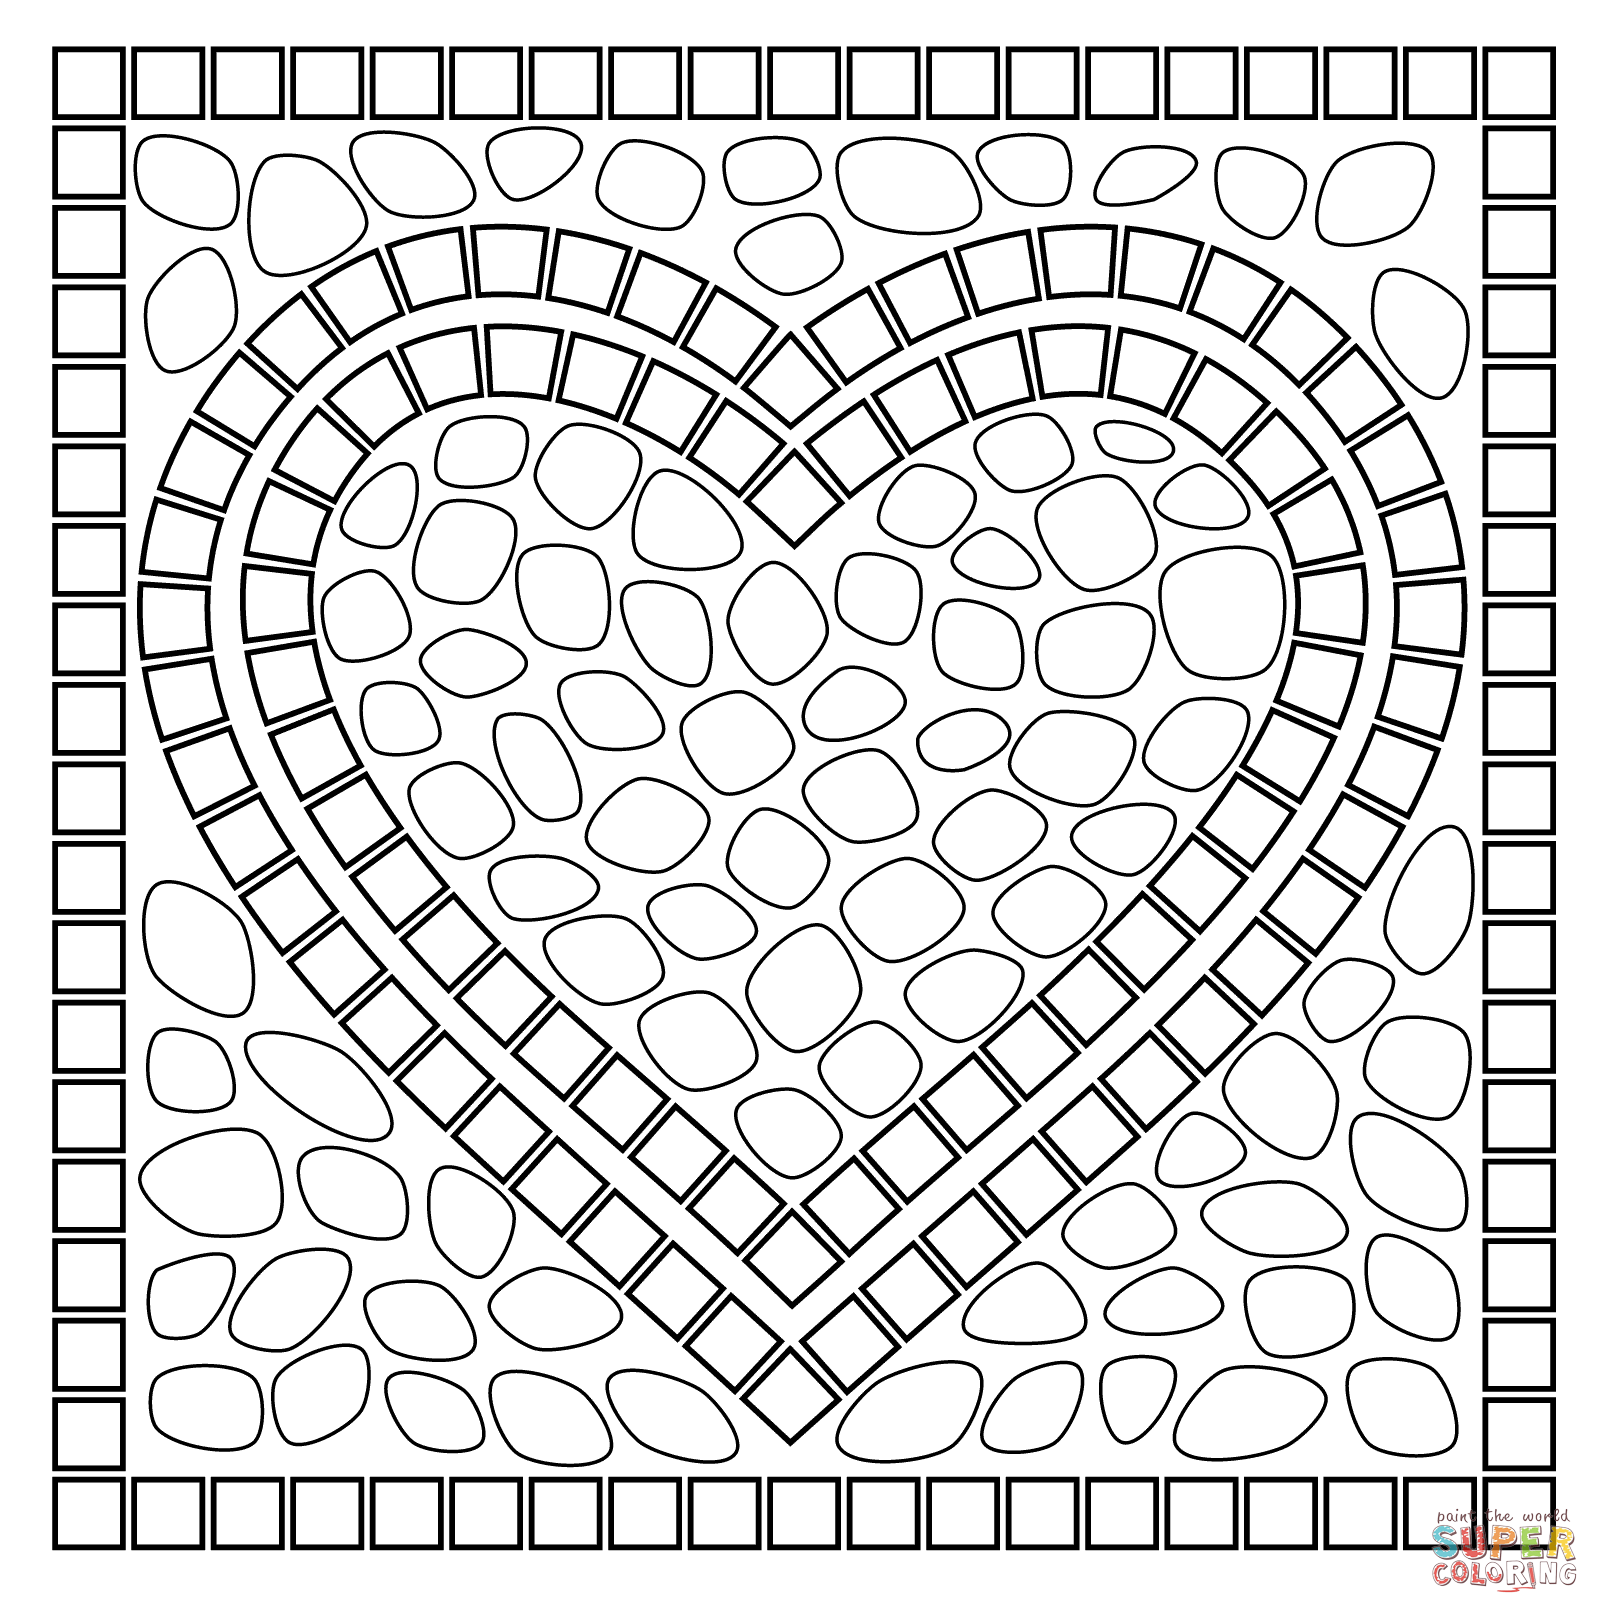 It's just a picture of Crush mosaic coloring pages